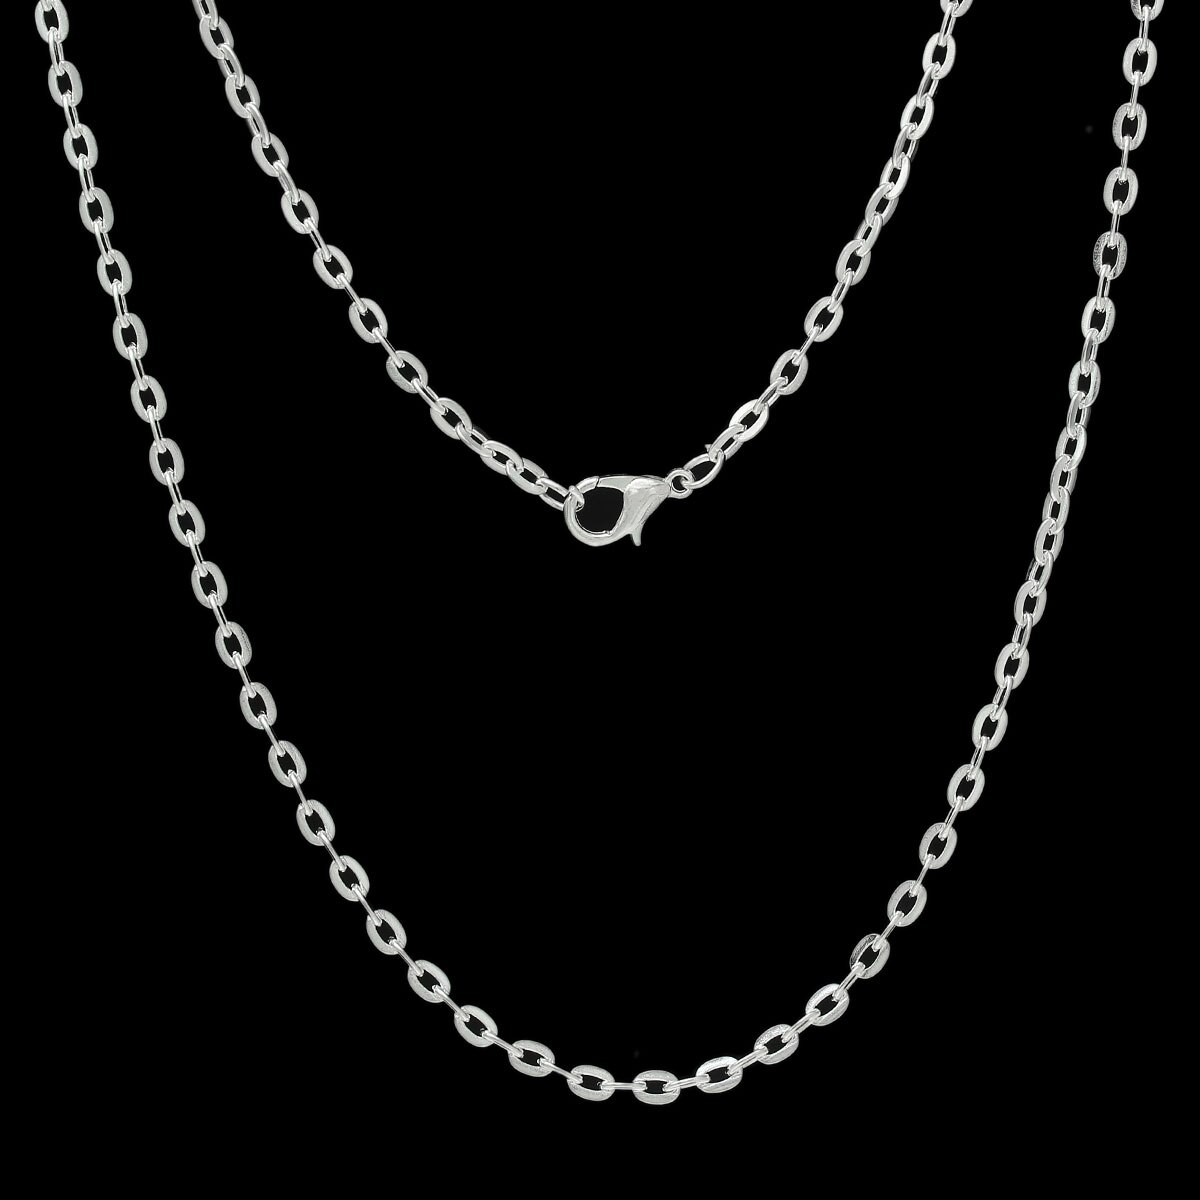 Us $4.53 22% Off|8Seasons Jewelry Necklace Silver Color Lobster Clasp Flat Link Opened Cable Chains (View 2 of 25)